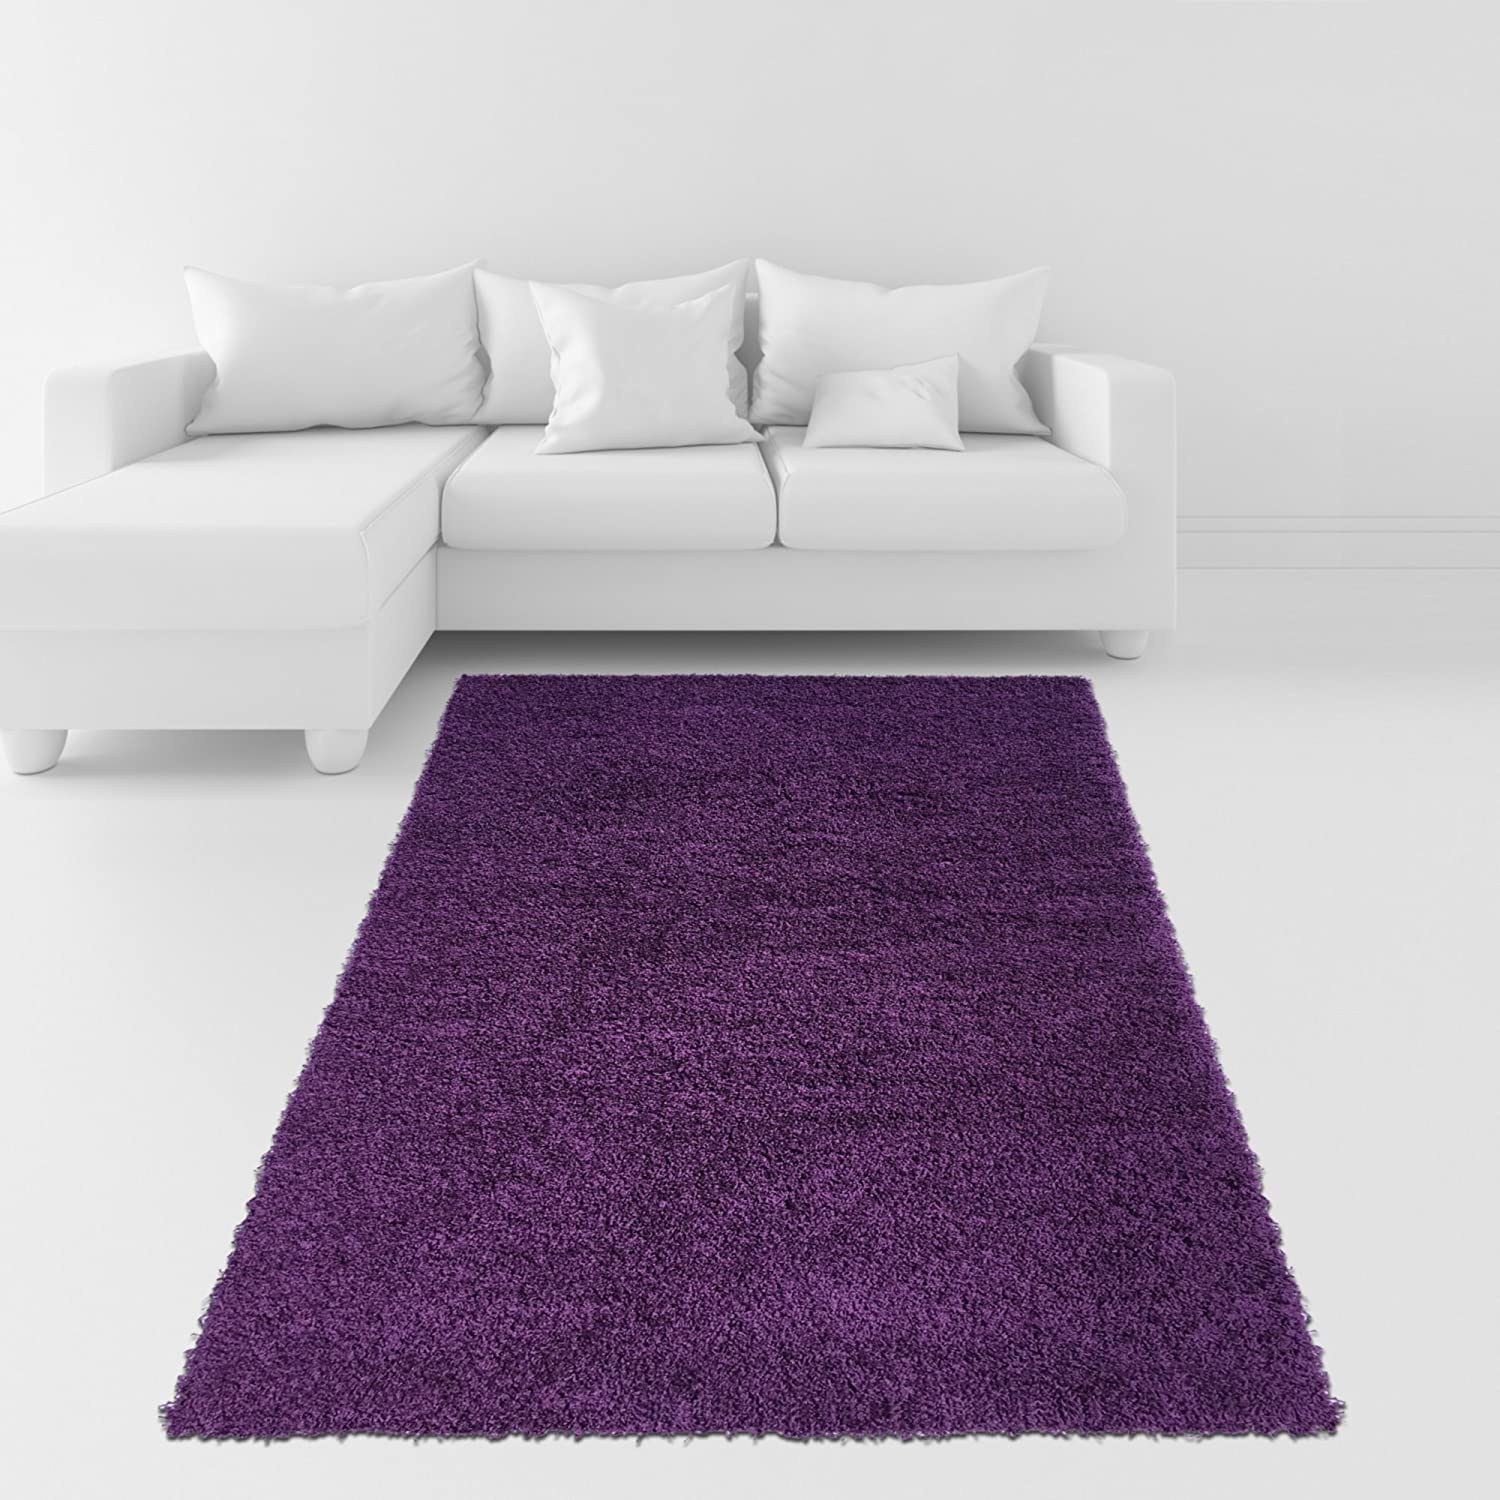 Amazon Soft Shag Area Rug 3x5 Plain Solid Color PURPLE